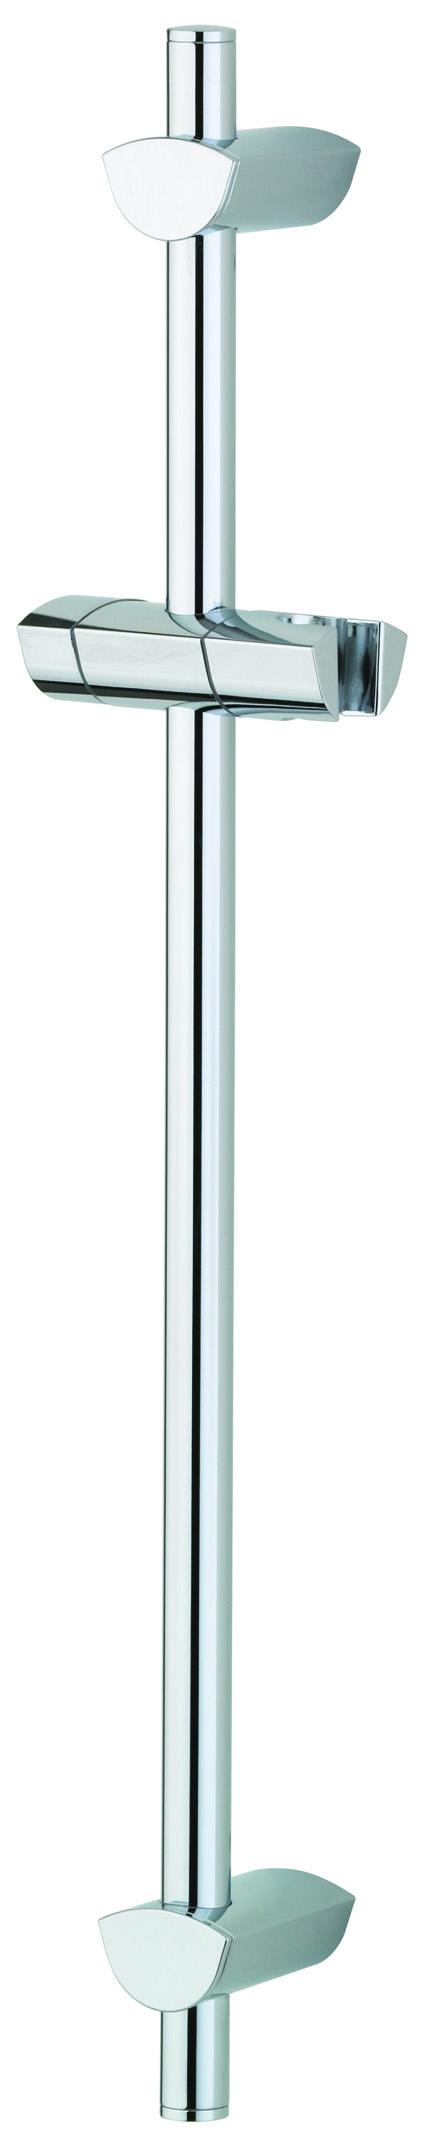 BRISTAN EVO RISER RAIL WITH ADJ FIXING BRACKETS 660MM CHROME - EVC ADR01 C